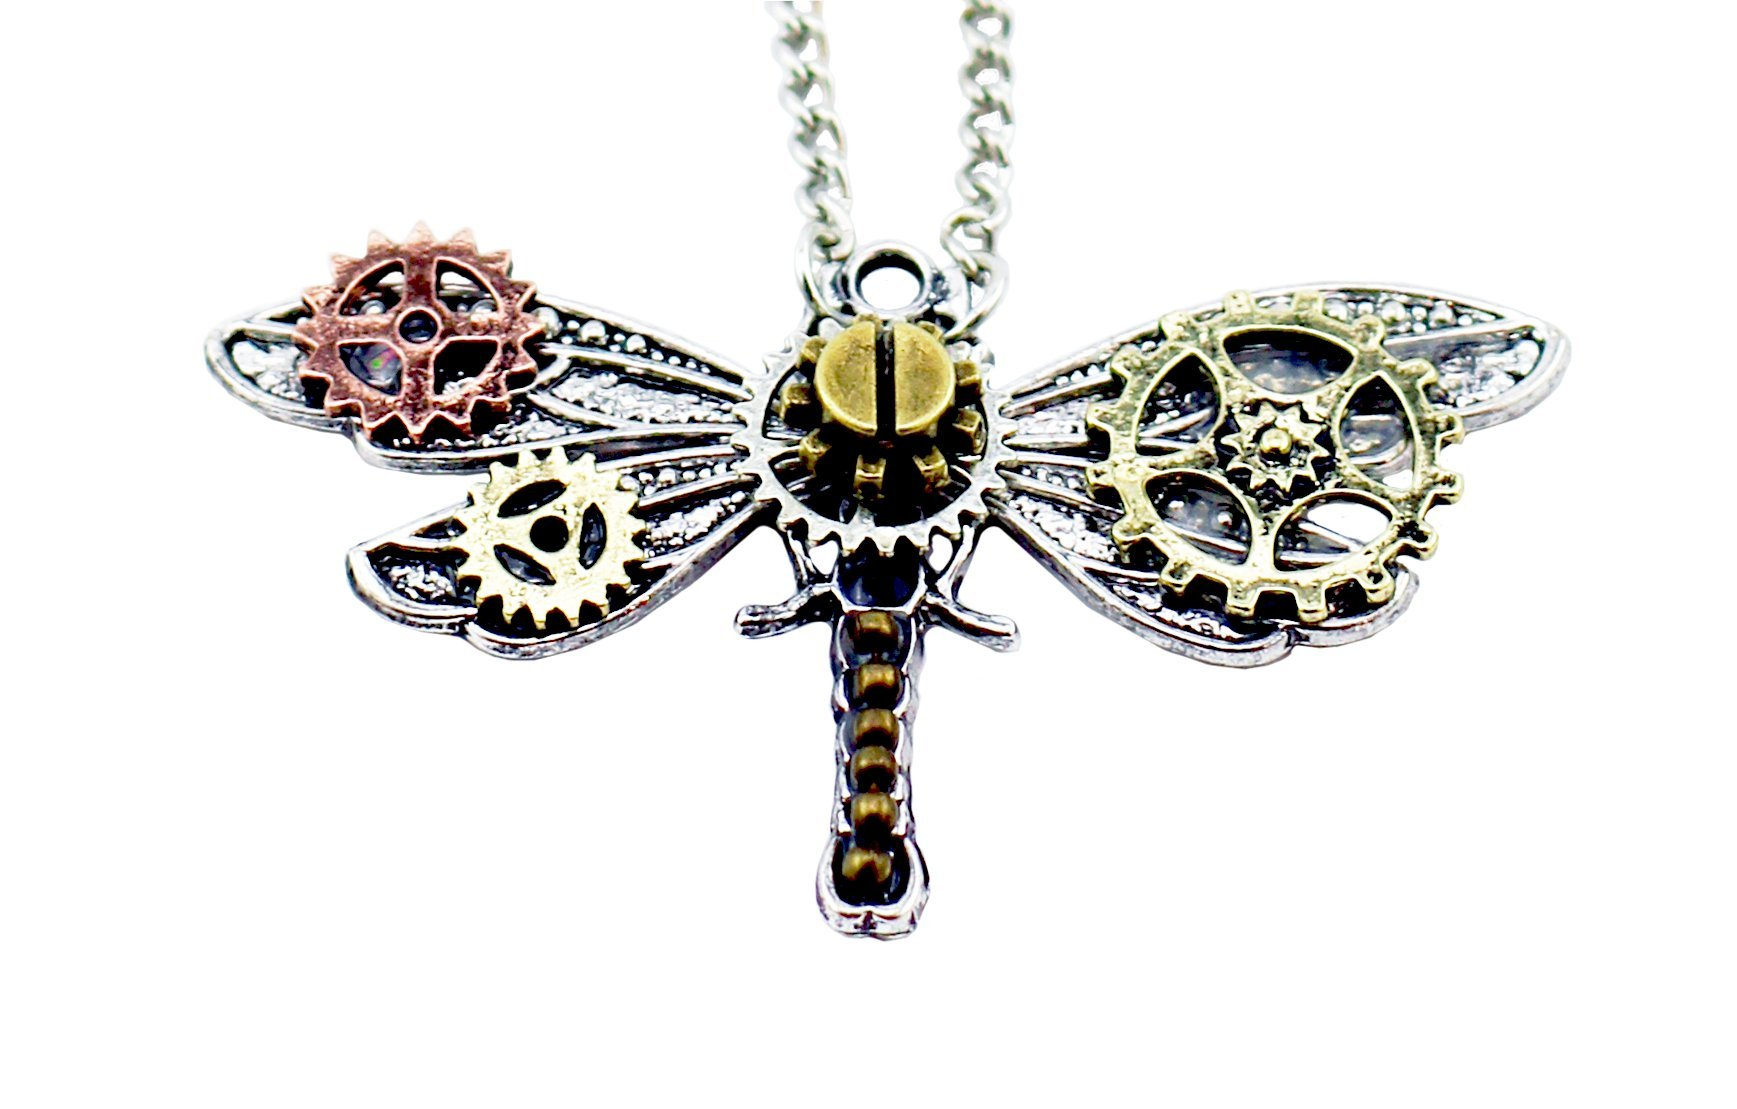 Frankenstrap Steampunk Dragonfly Pendant Necklace - Vintage Gear Cosplay Jewelery 4